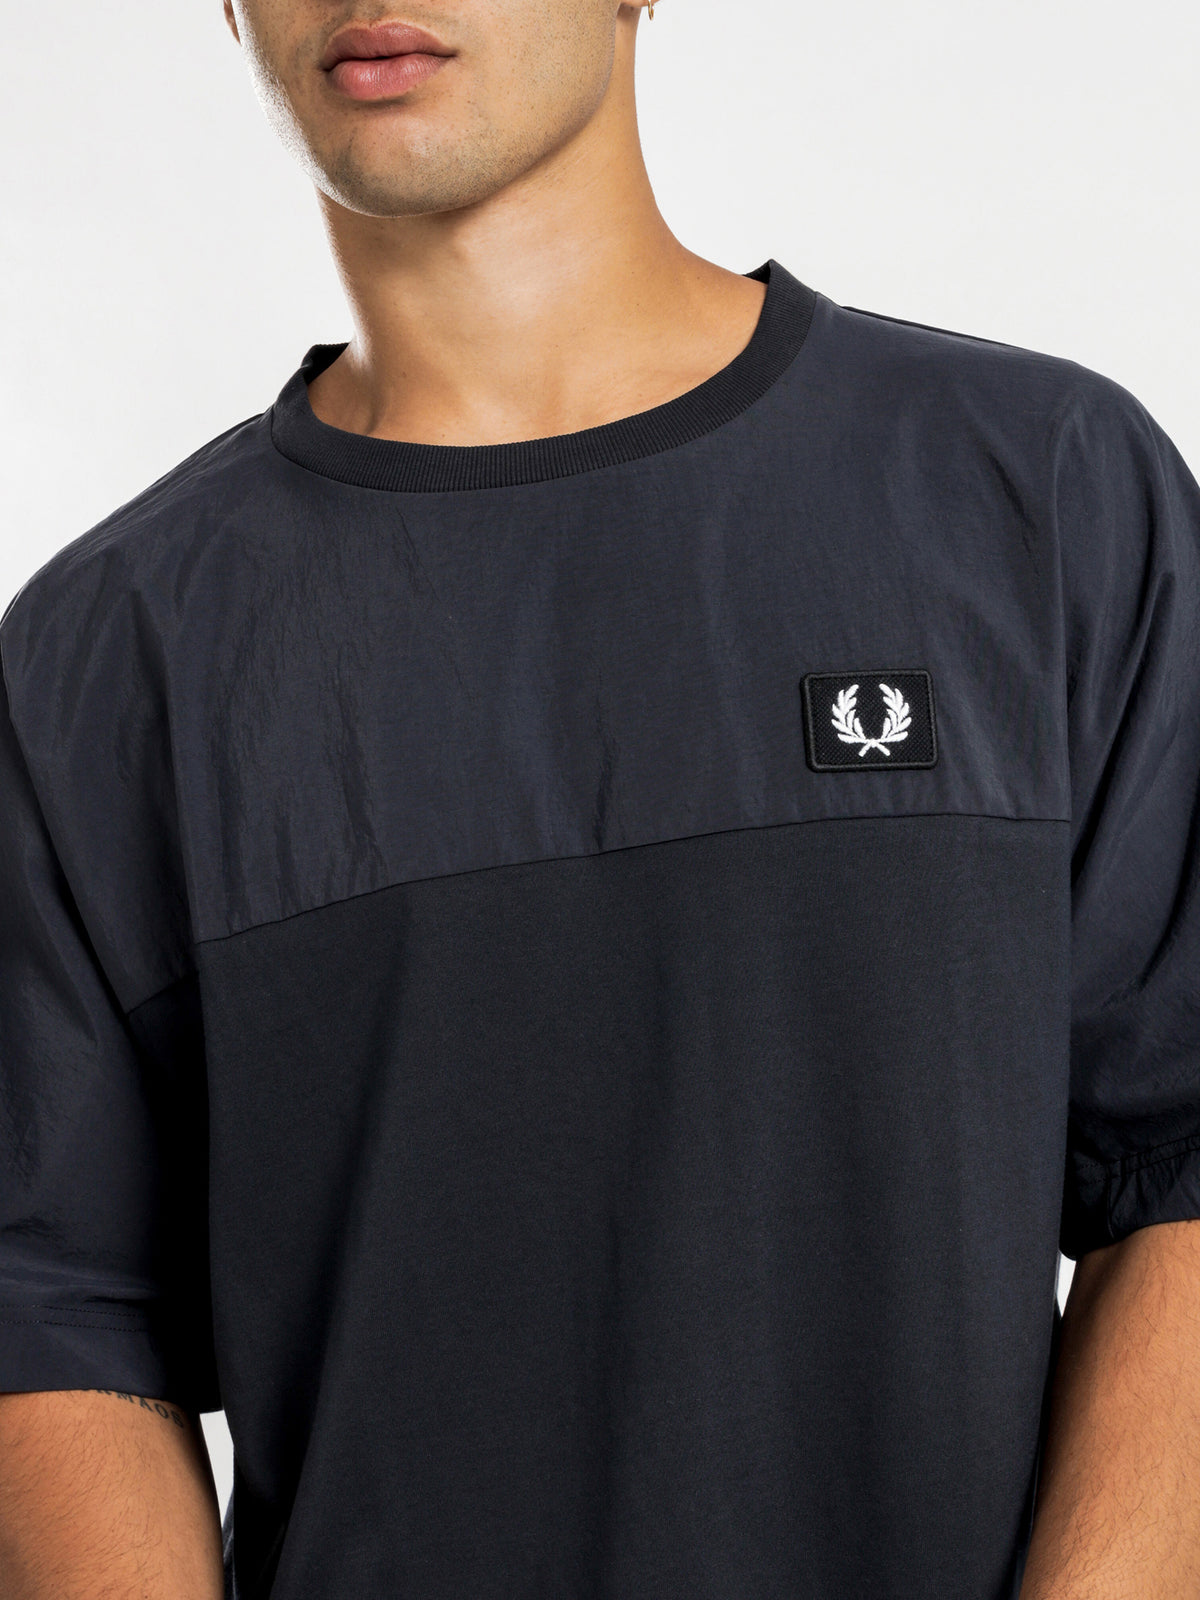 Woven Panel T-Shirt in Navy